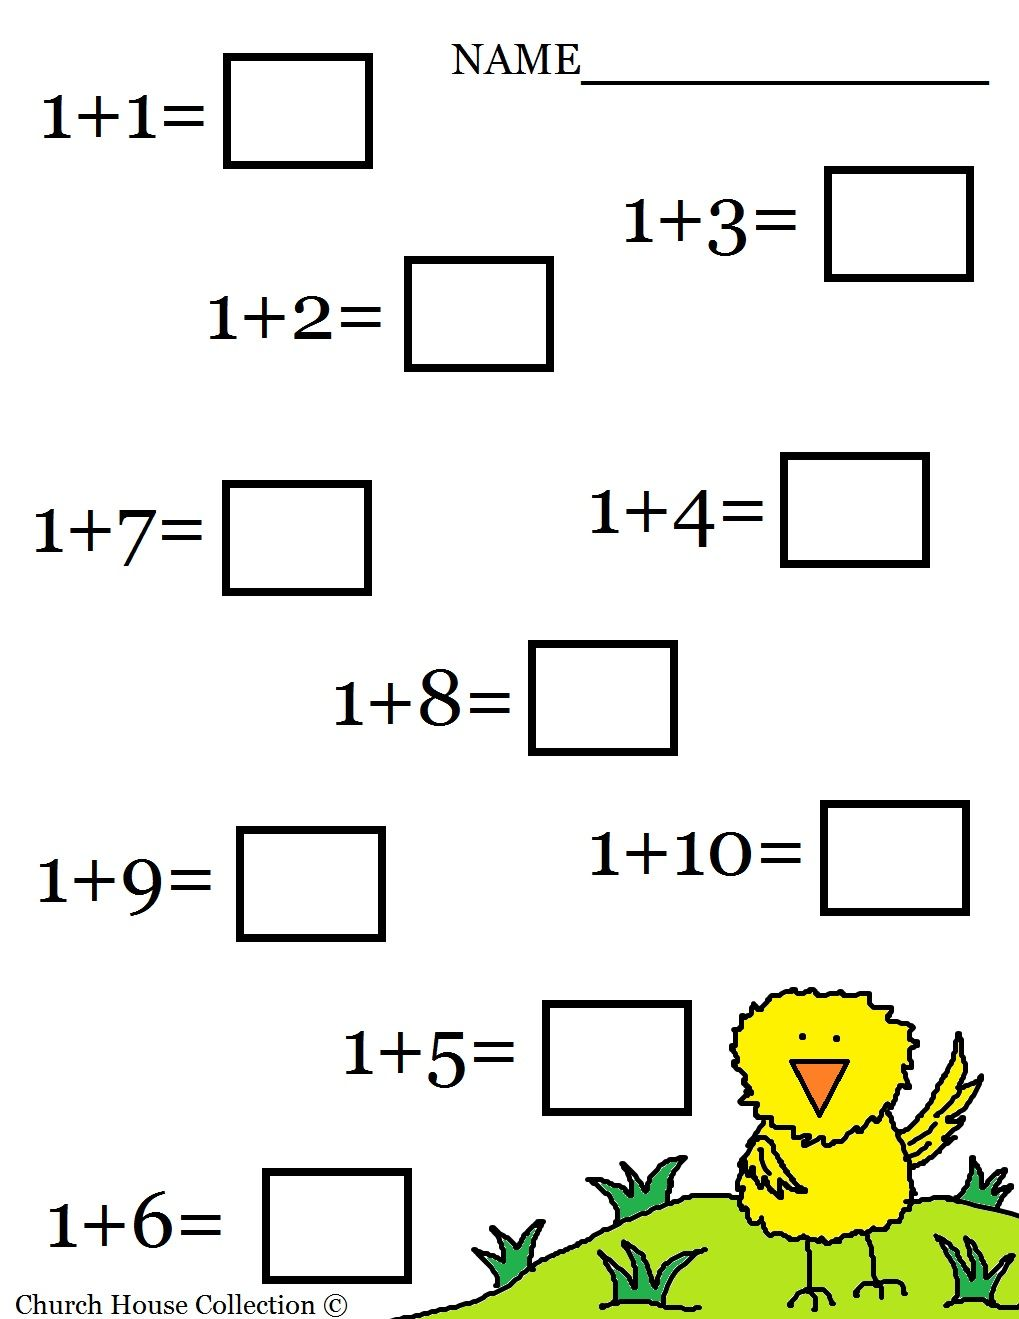 Weirdmailus  Mesmerizing  Images About Worksheets  Math On Pinterest  Math Sheets  With Outstanding  Images About Worksheets  Math On Pinterest  Math Sheets Math Worksheets For Kindergarten And Simple Addition With Breathtaking Math Pre K Worksheets Also Rd Grade Handwriting Worksheets In Addition Place Value Practice Worksheets And Counting Syllables Worksheet As Well As Exercise Worksheets For Kids Additionally Dr Martin Luther King Jr Worksheets From Pinterestcom With Weirdmailus  Outstanding  Images About Worksheets  Math On Pinterest  Math Sheets  With Breathtaking  Images About Worksheets  Math On Pinterest  Math Sheets Math Worksheets For Kindergarten And Simple Addition And Mesmerizing Math Pre K Worksheets Also Rd Grade Handwriting Worksheets In Addition Place Value Practice Worksheets From Pinterestcom